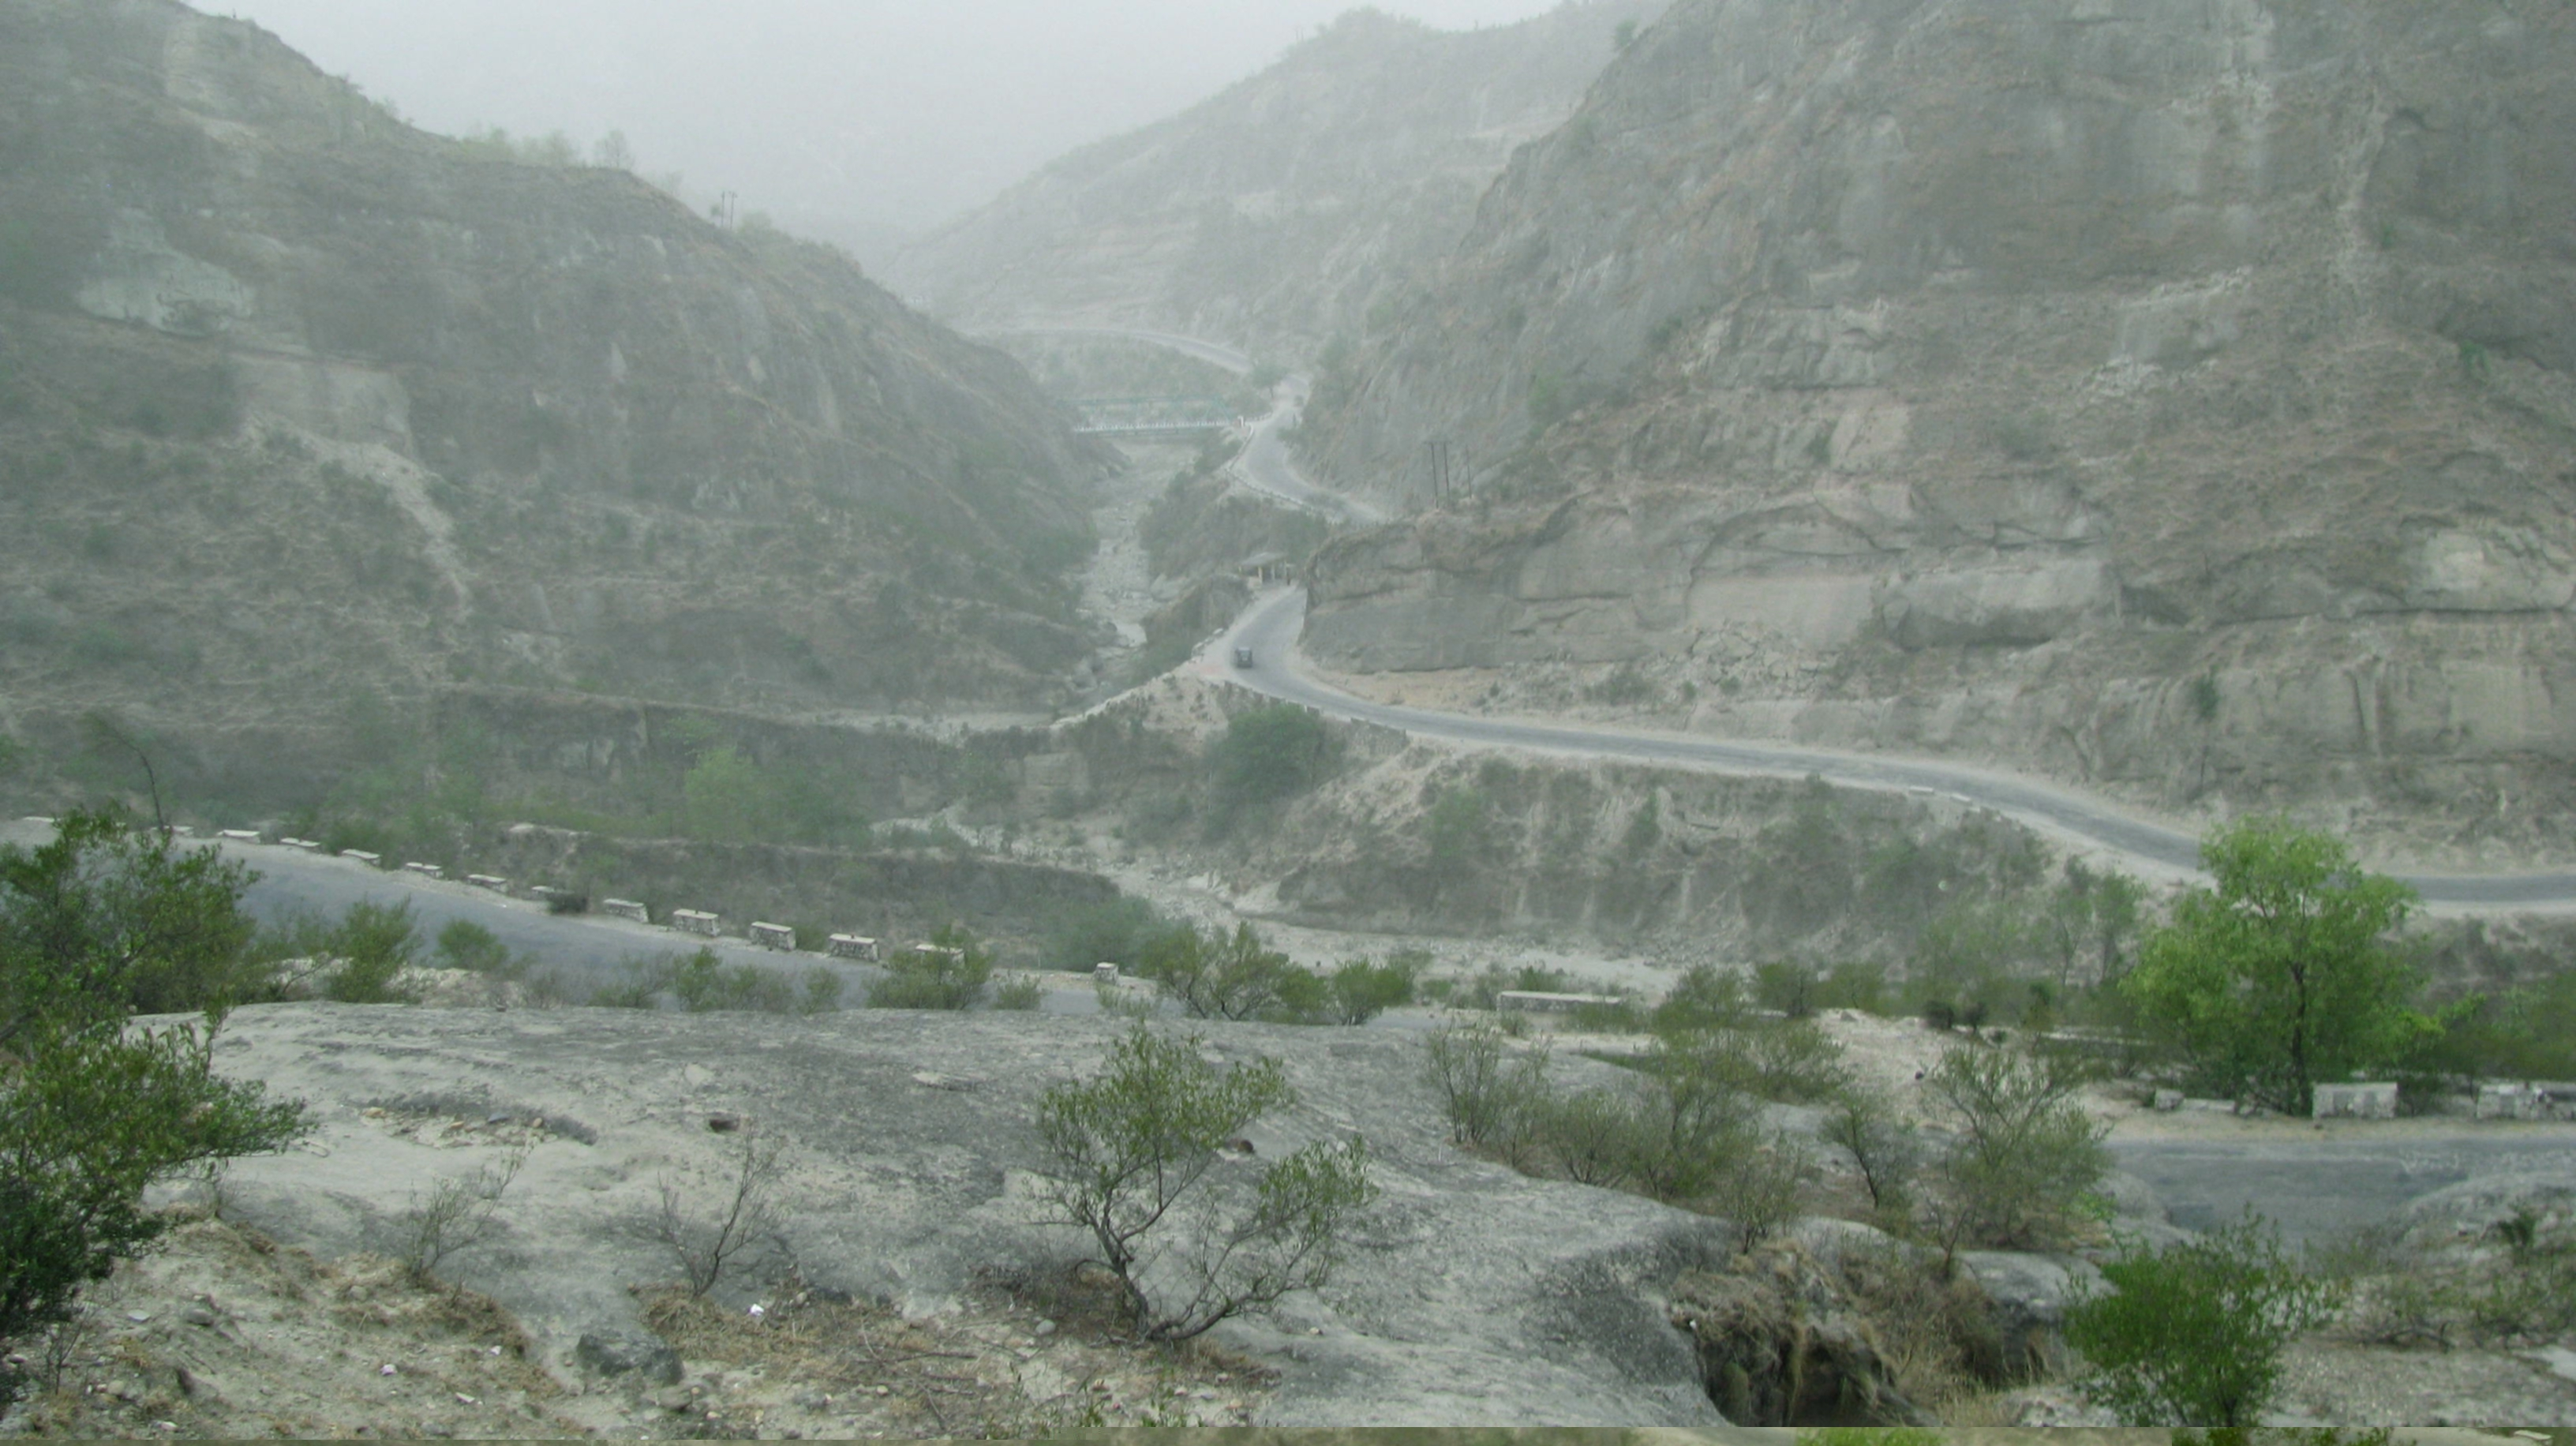 The road leading to Mansar